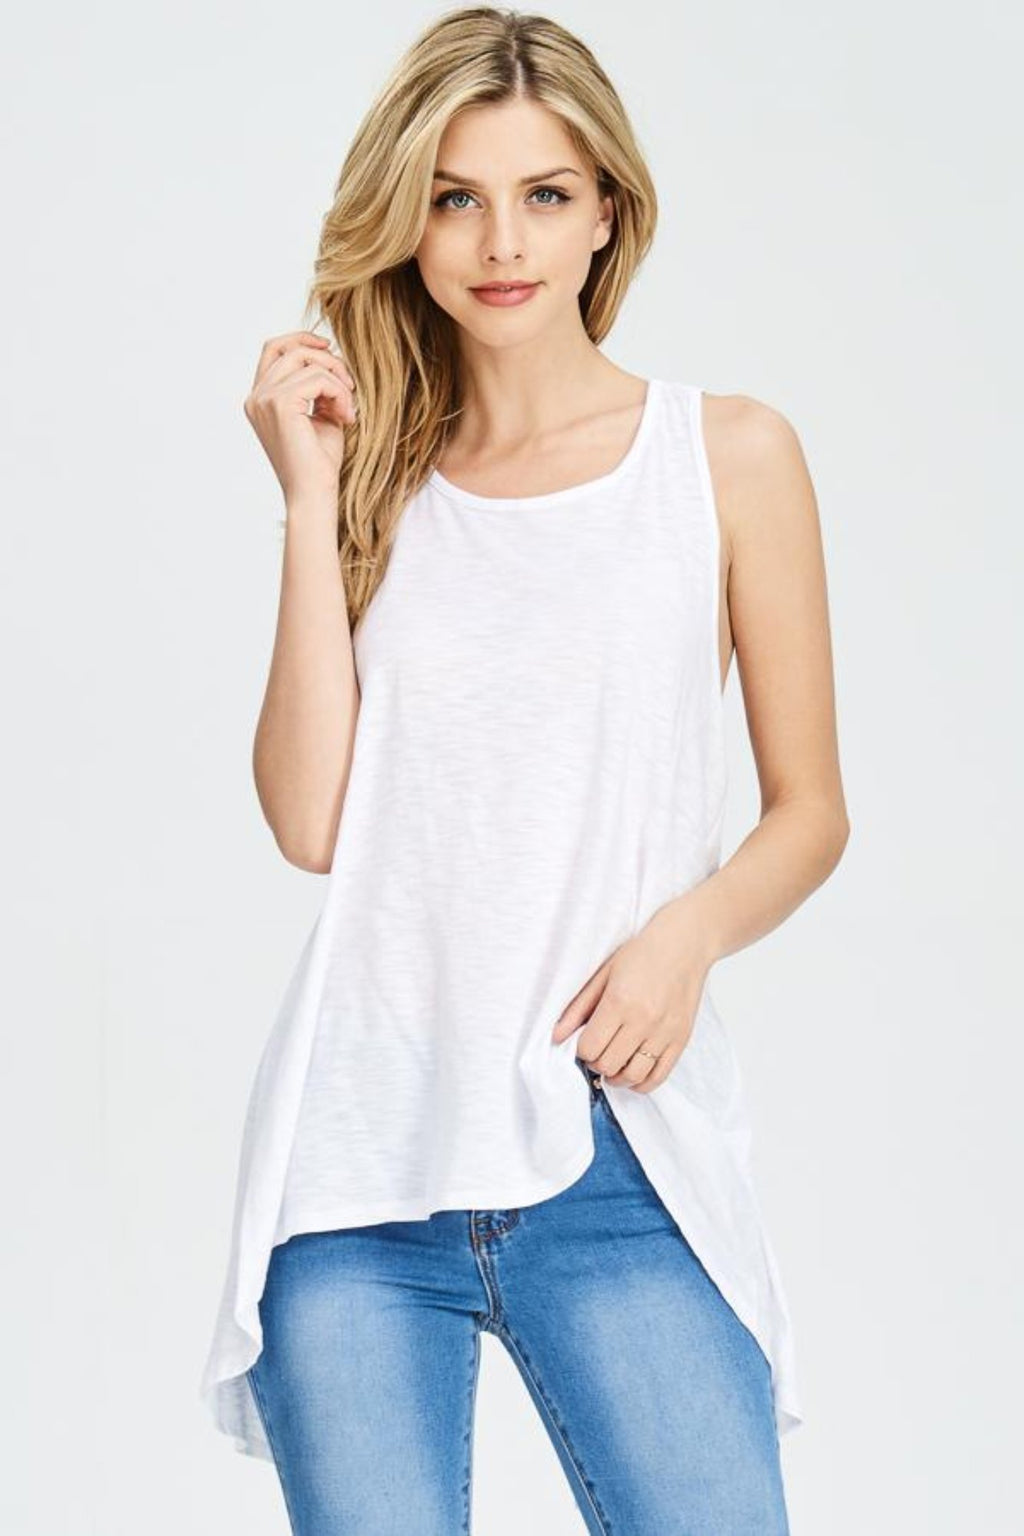 Forgiven Tank Top- White Clothing Fair Shade S White